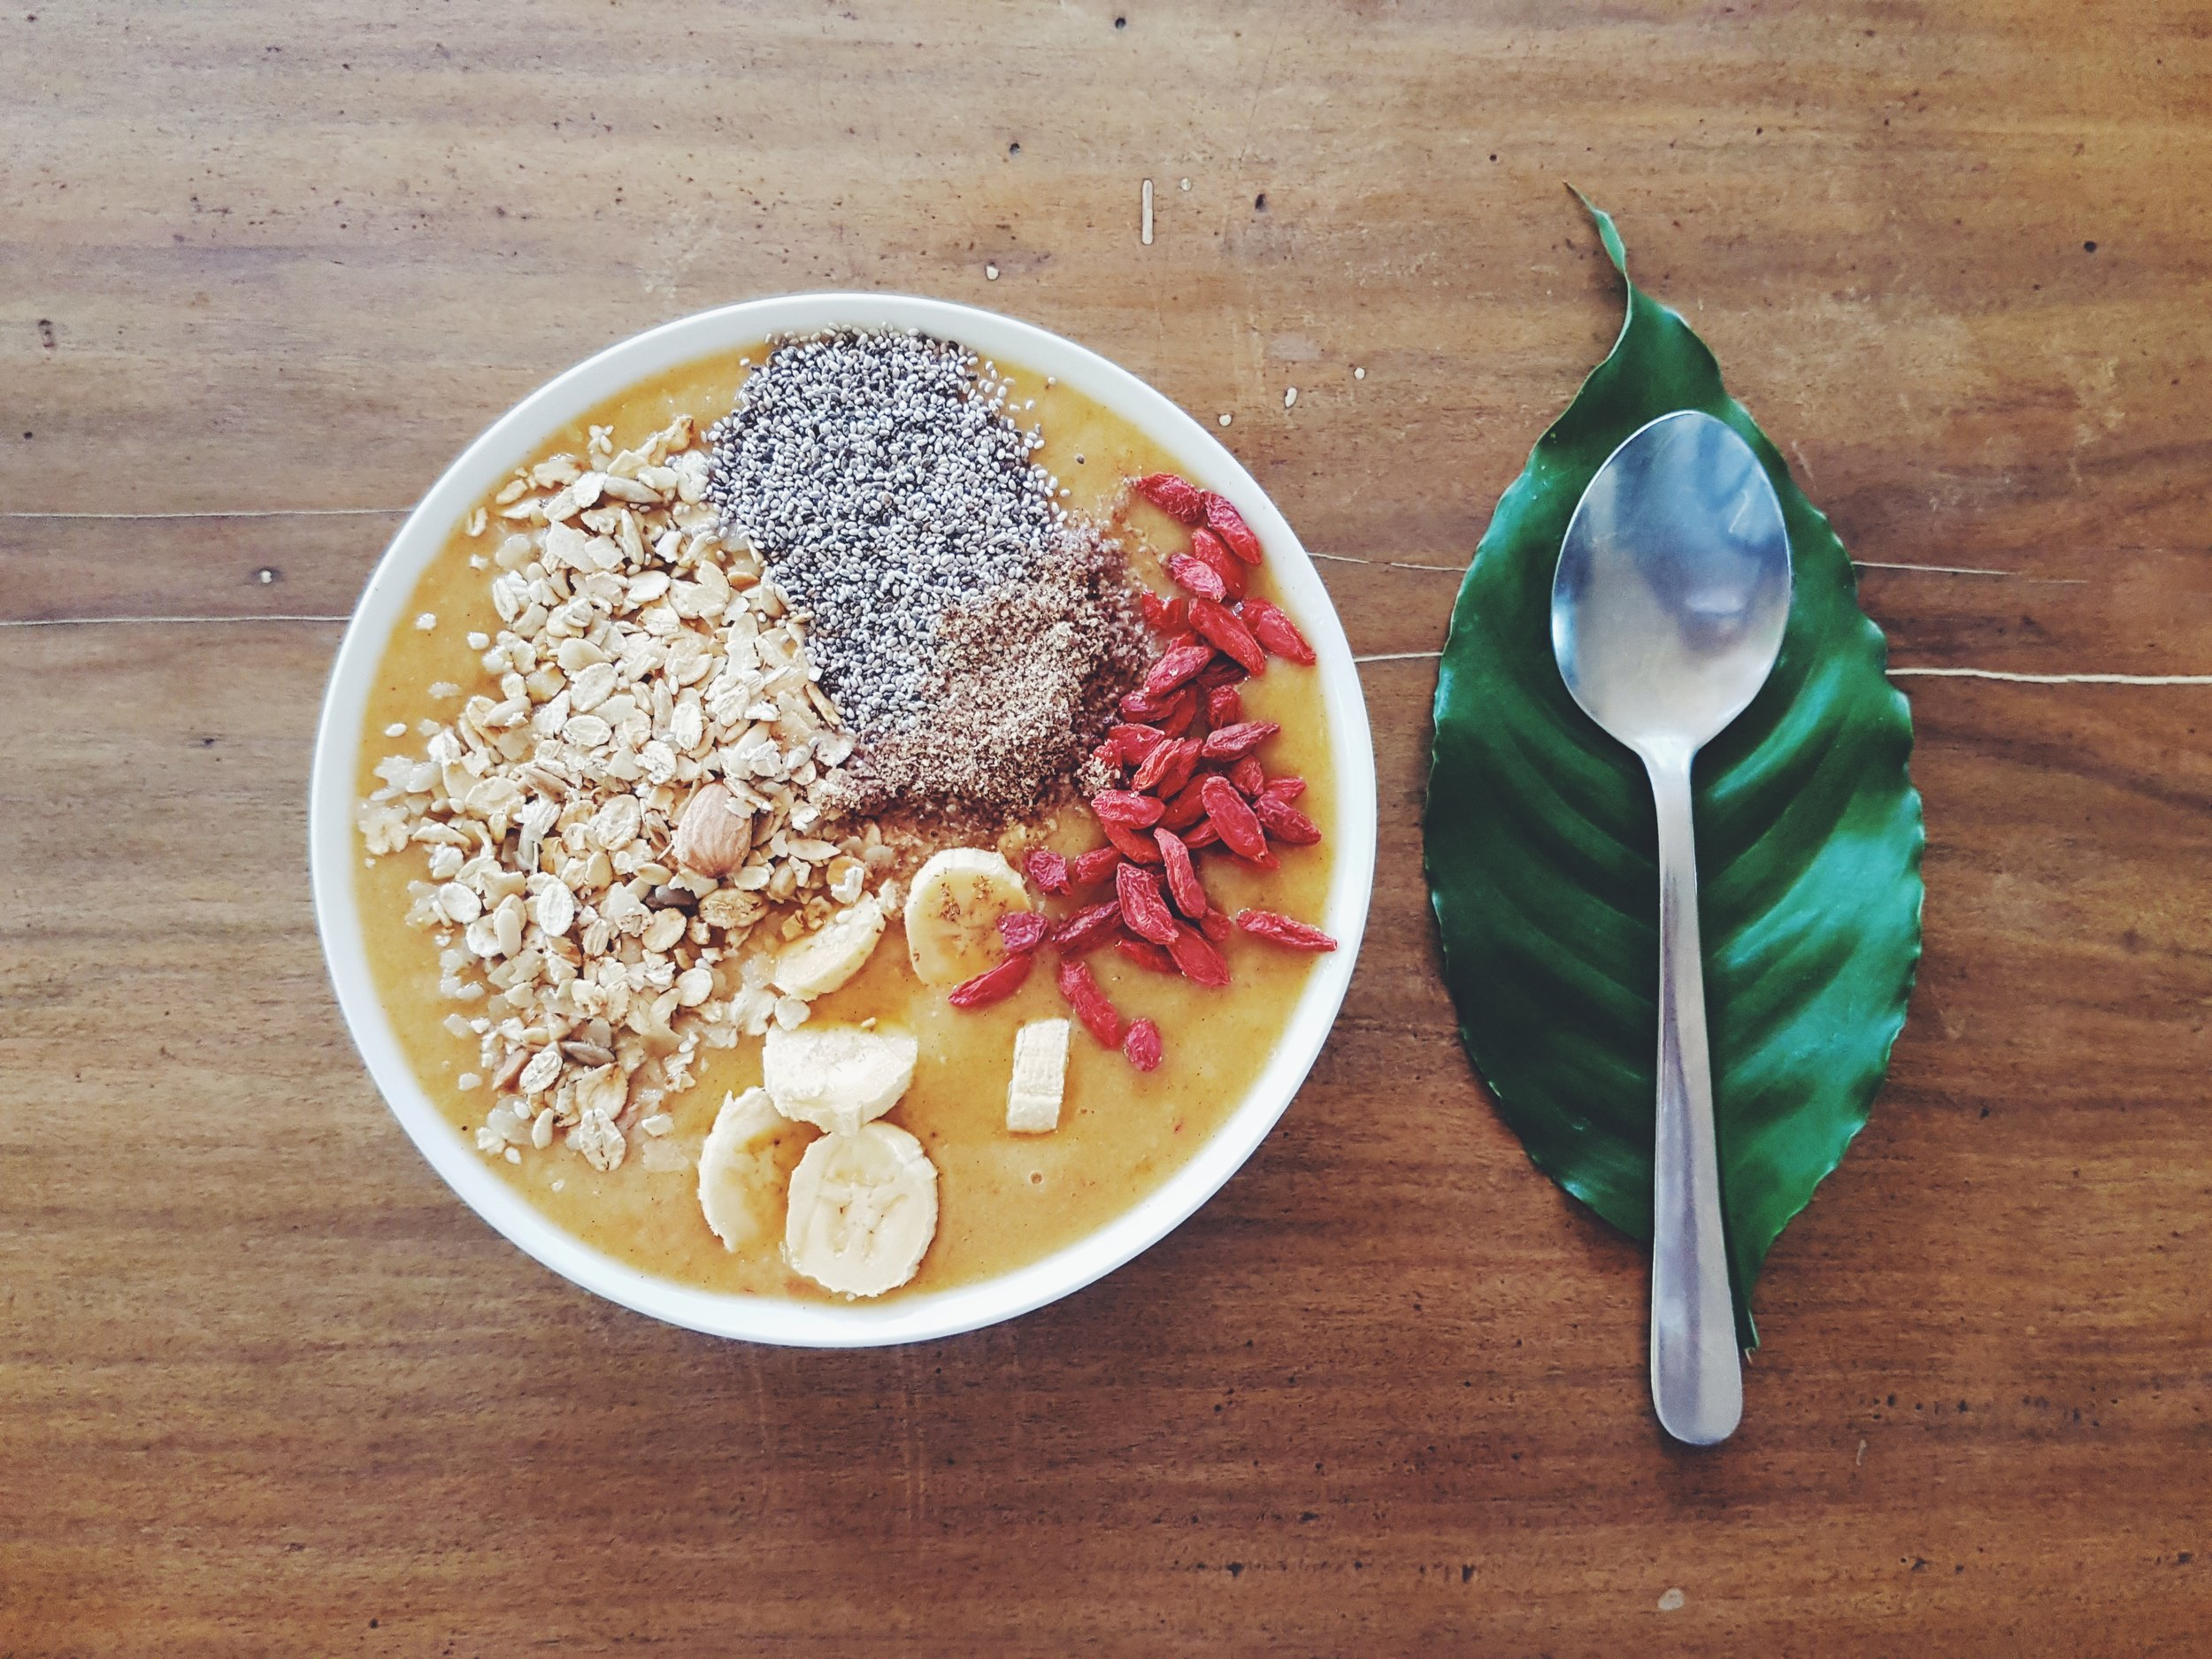 If you're not feeling like spending why not create your own healthy indulgence this Vday? Here's Bhrett's own version of a healthy smoothie bowl.